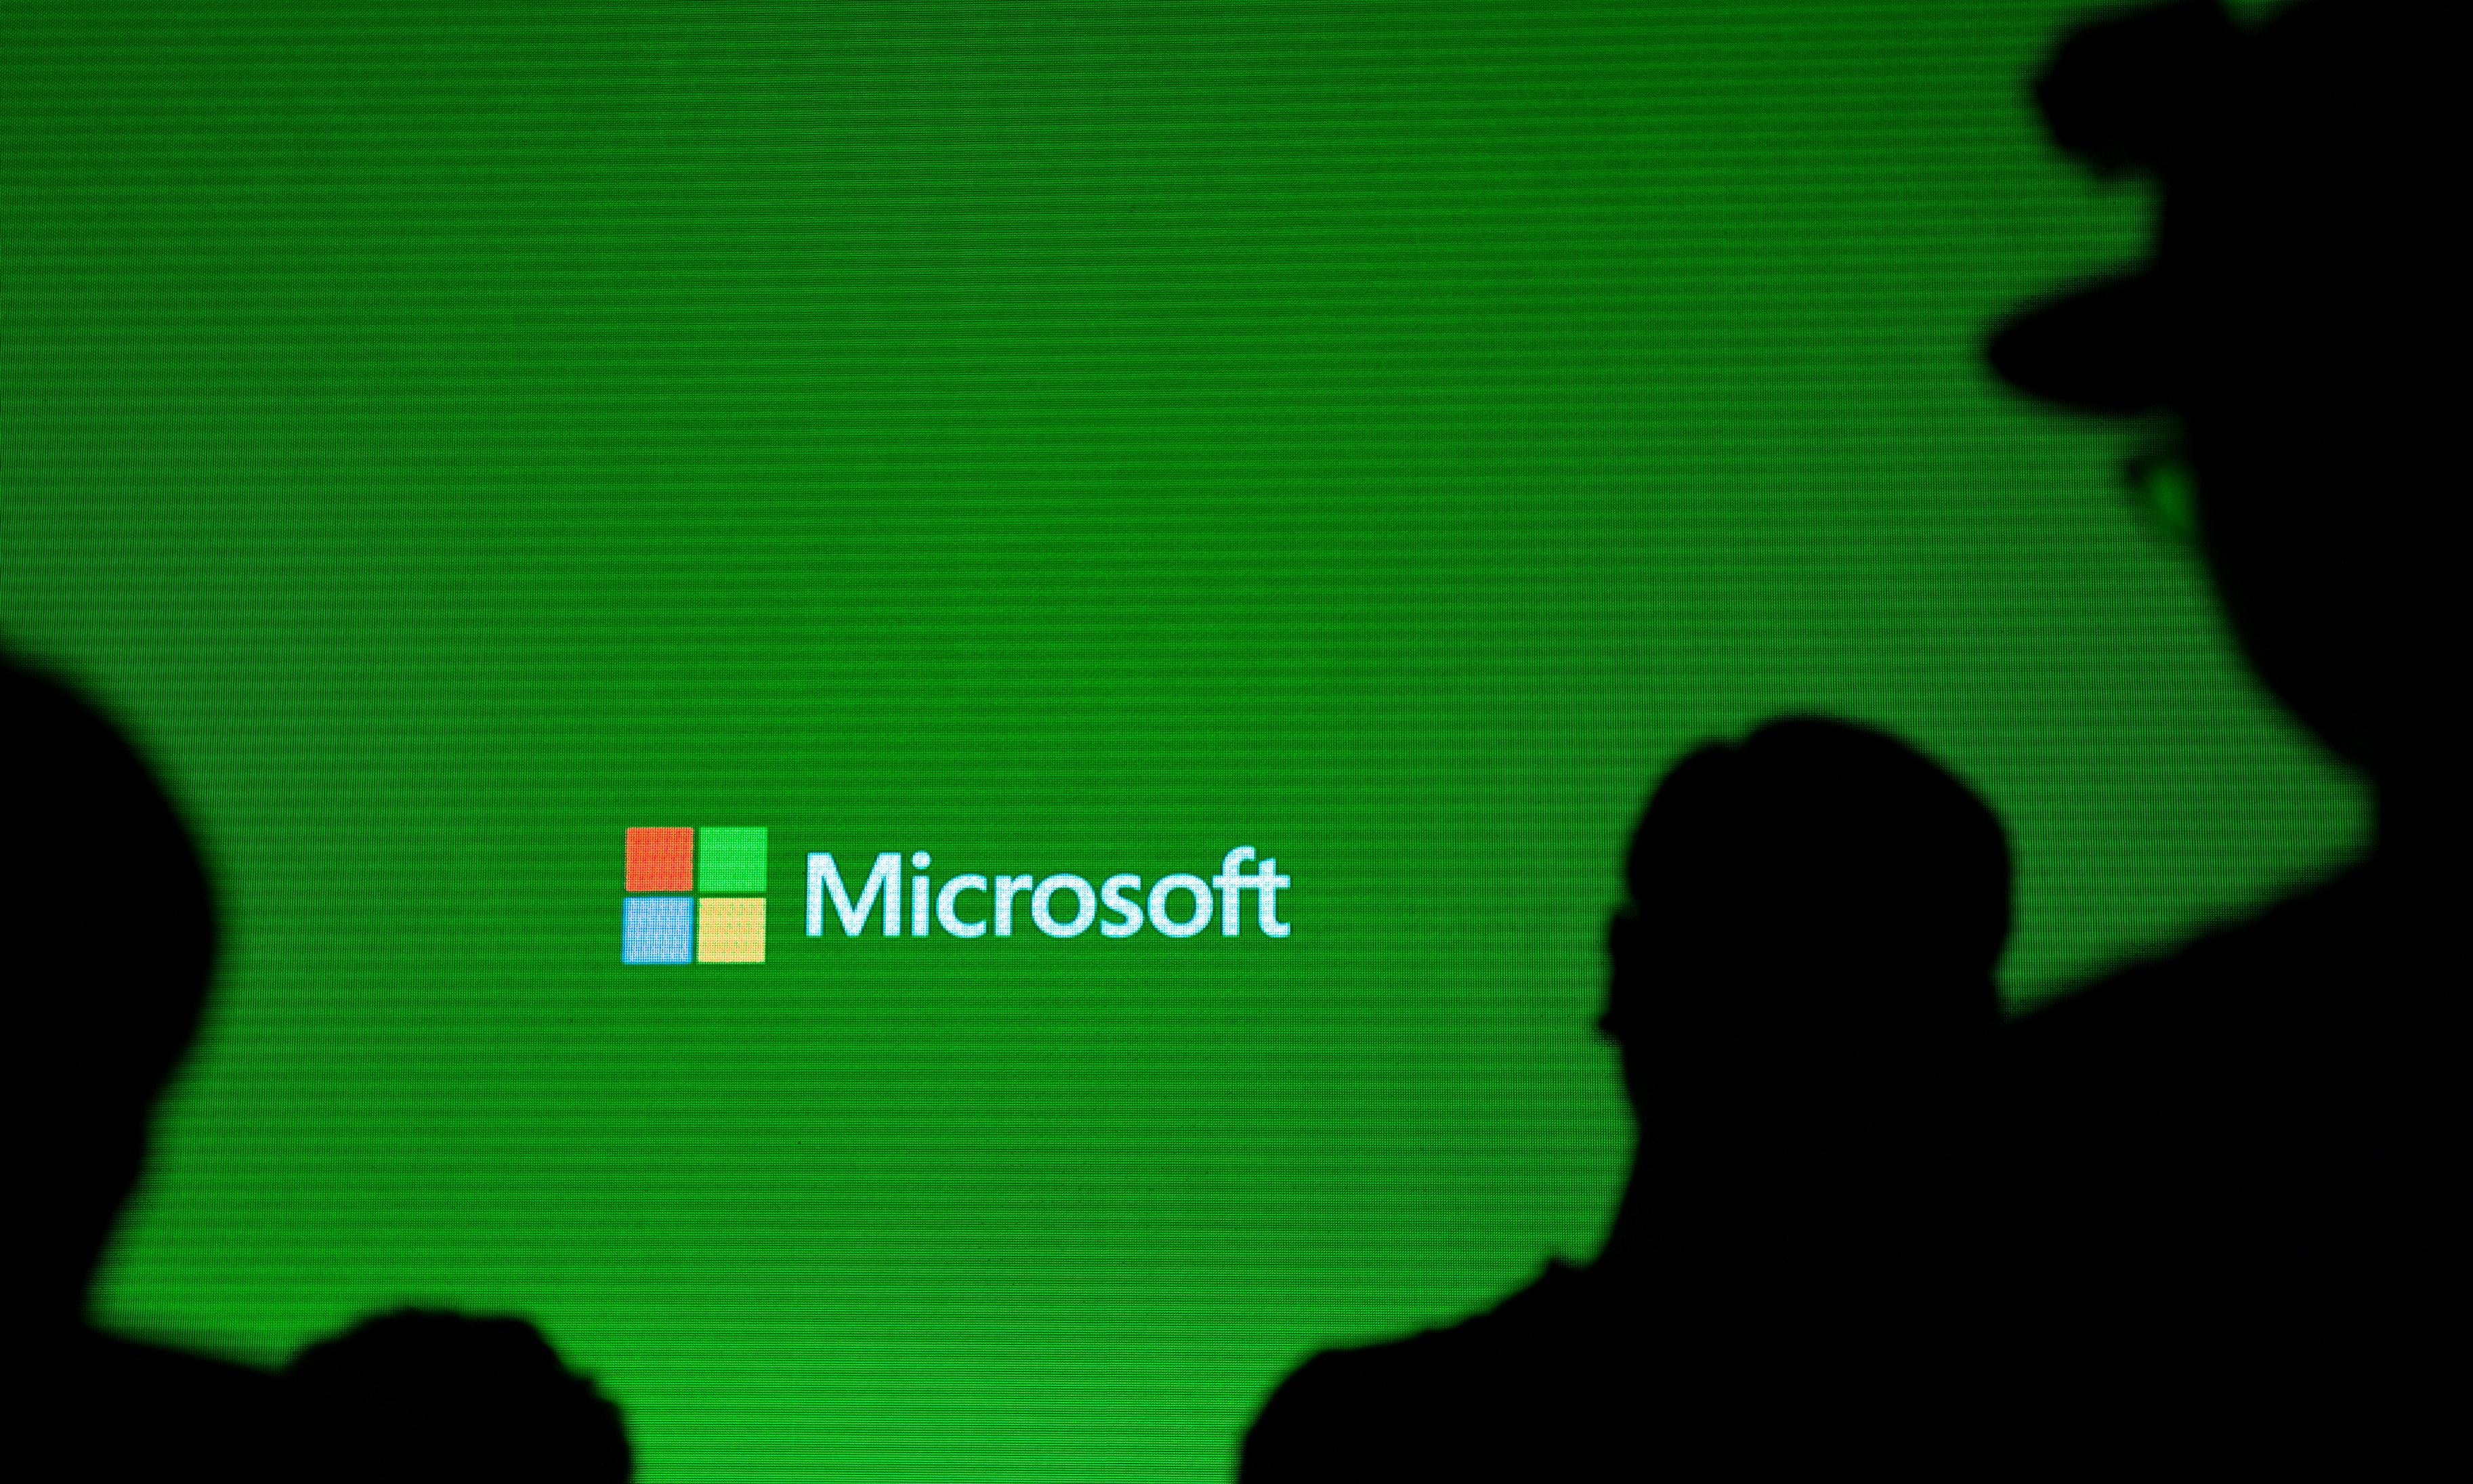 A Microsoft logo is pictured during a presentation.